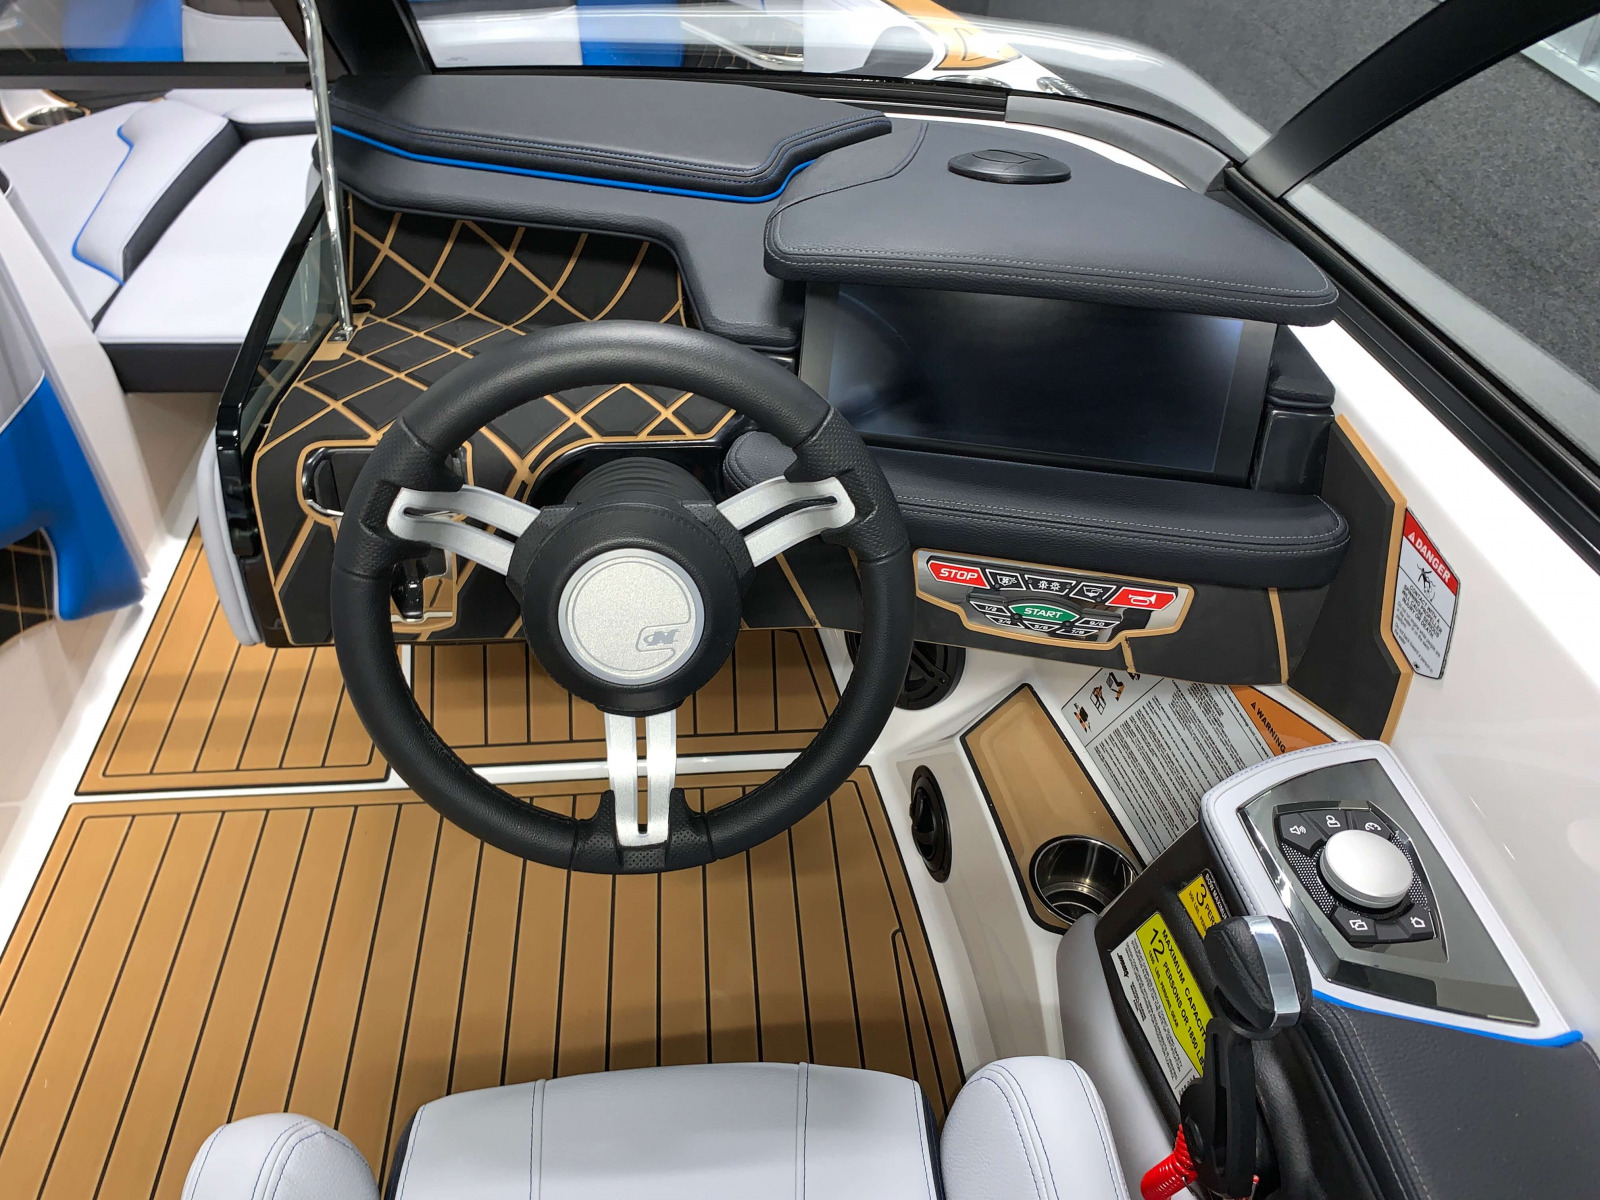 Helm of the 2021 Nautique GS20 Wake Boat